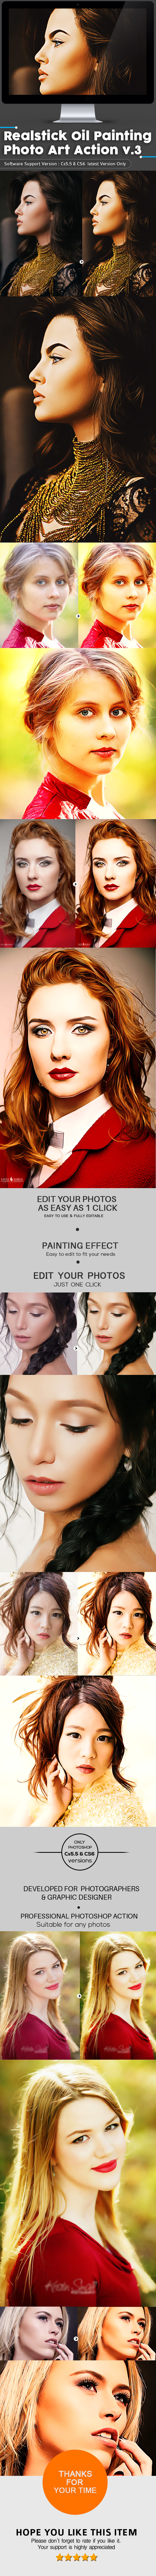 Realstick Oil Painting Photo Art Action v.3 - Photo Effects Actions